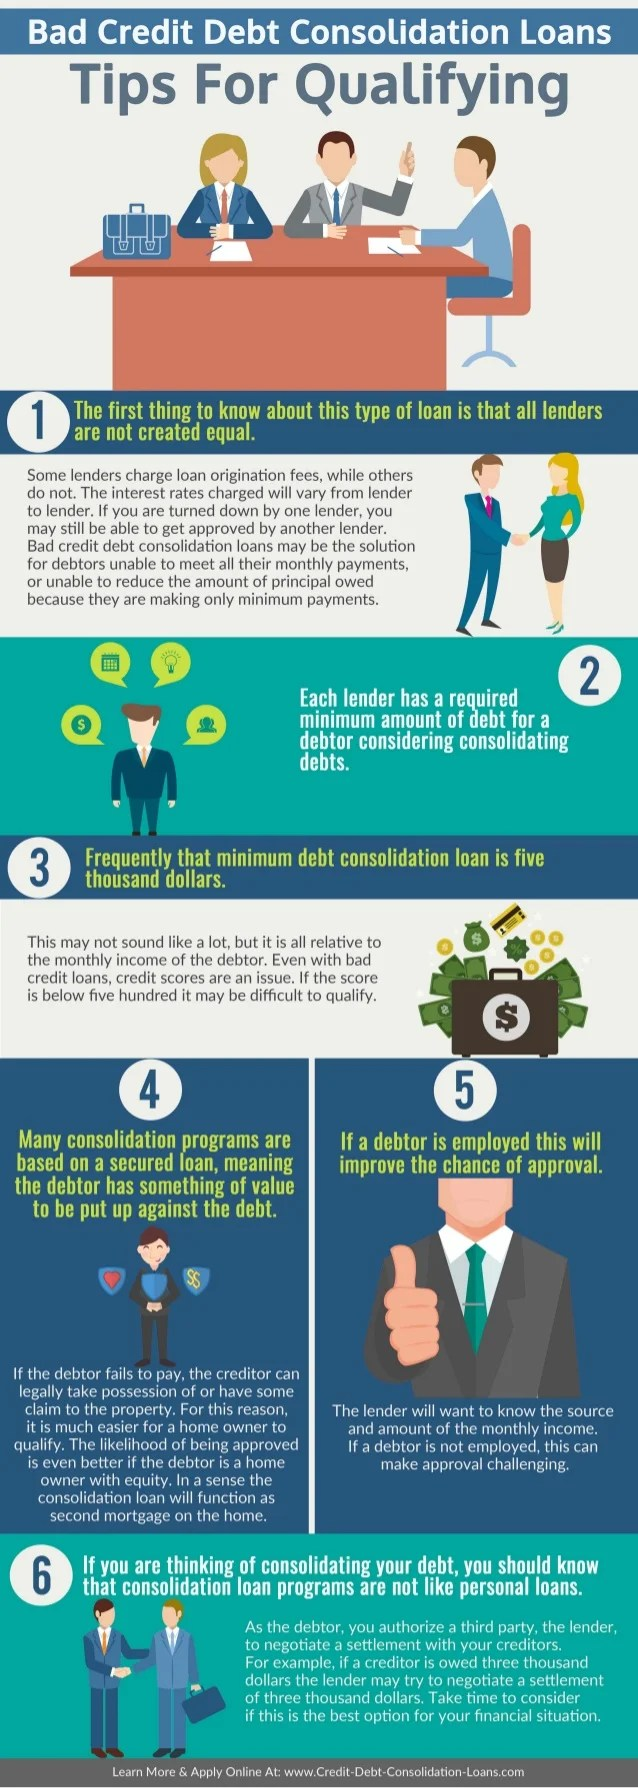 Bad Credit Debt Consolidation Loans: Tips For Qualifying